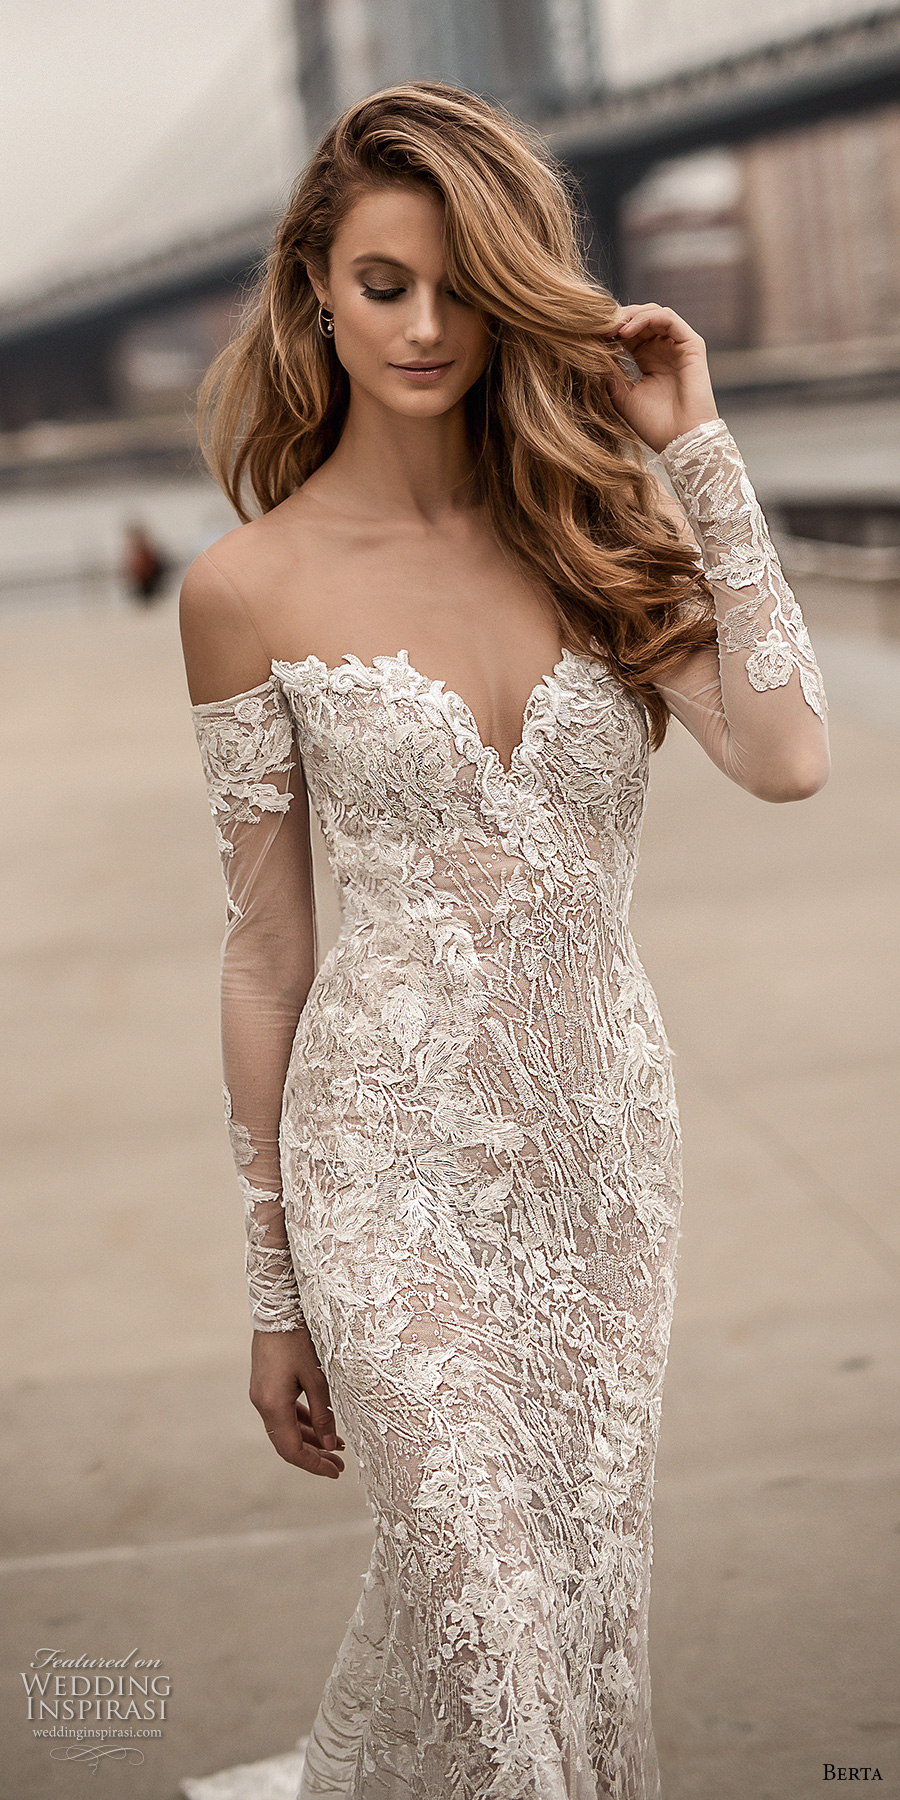 berta spring 2018 bridal long sleeves off the shoulder sweetheart neckline full embellishment sexy elegant fit and flare wedding dress open low back medium train (3) zv